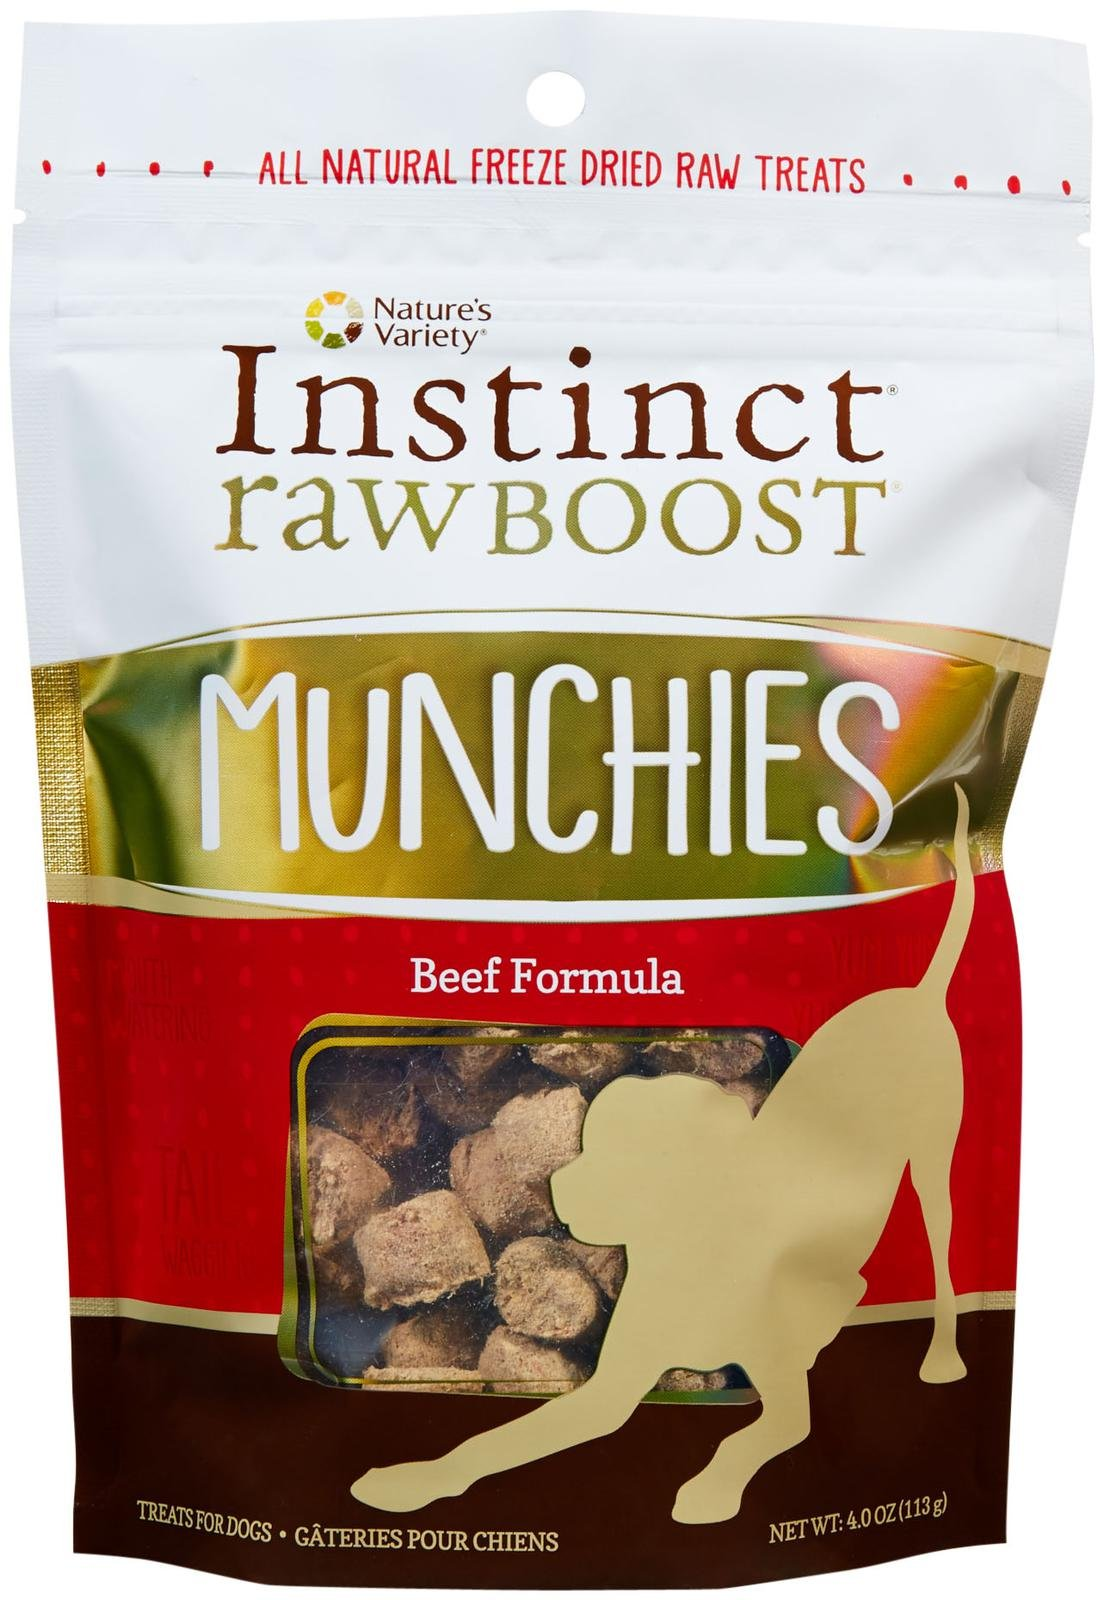 Nature's Variety Instinct Raw Boost Munchies Treats for Dogs